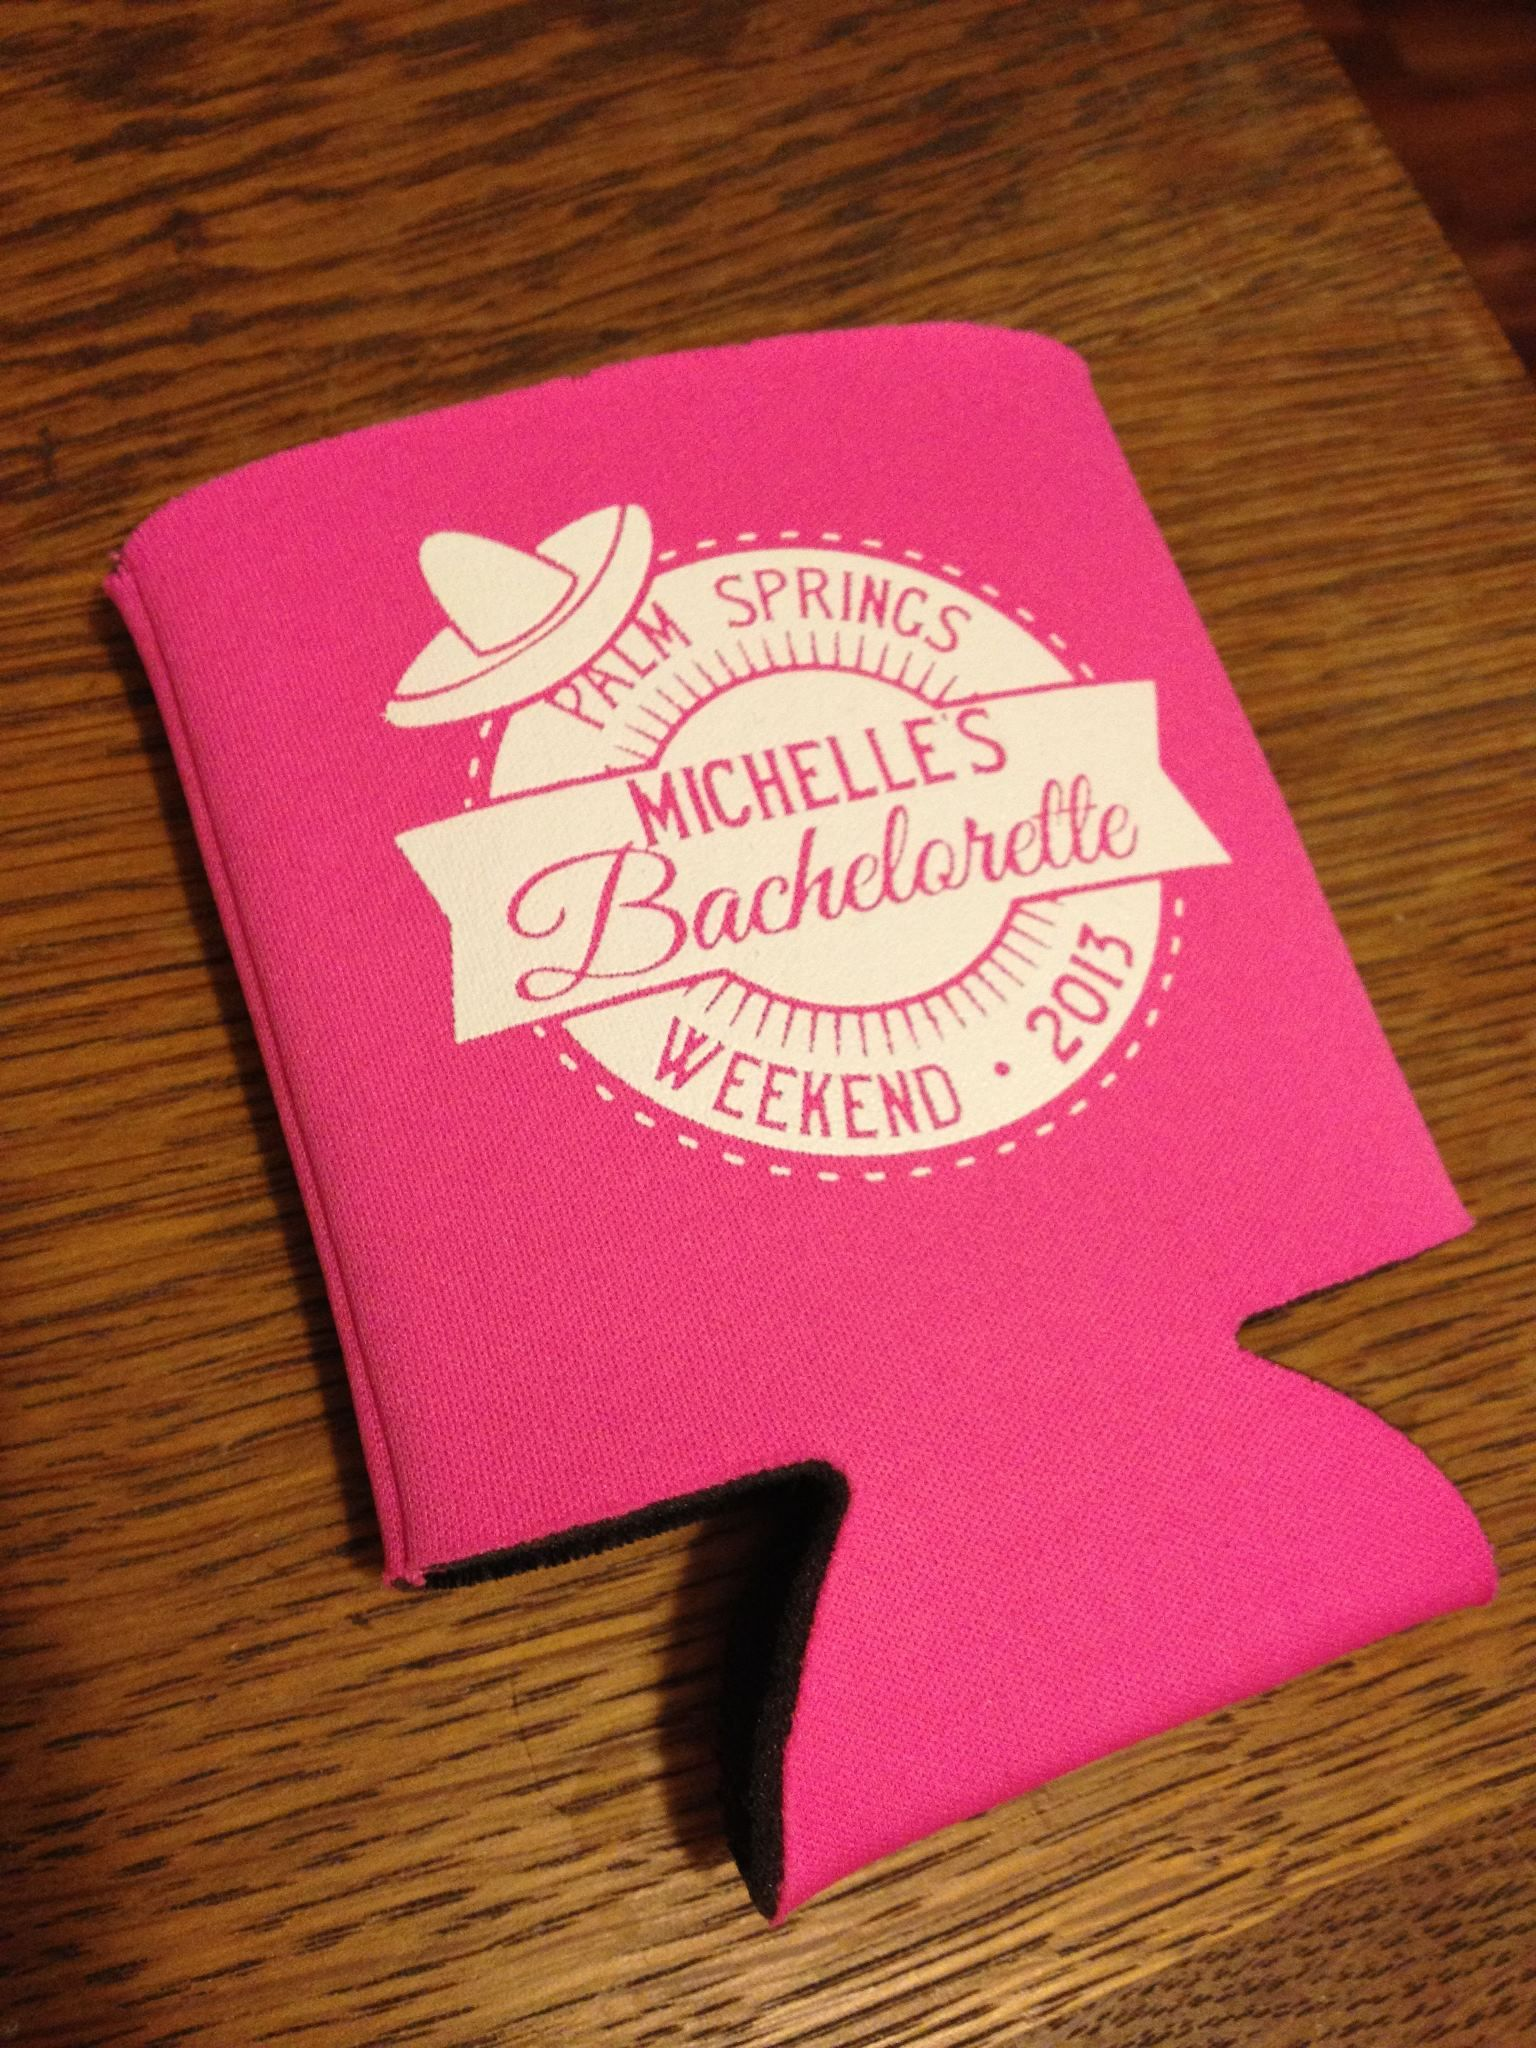 Sombrero Bachelorette Party Koozie Get Your Free Koozie Proof on ...